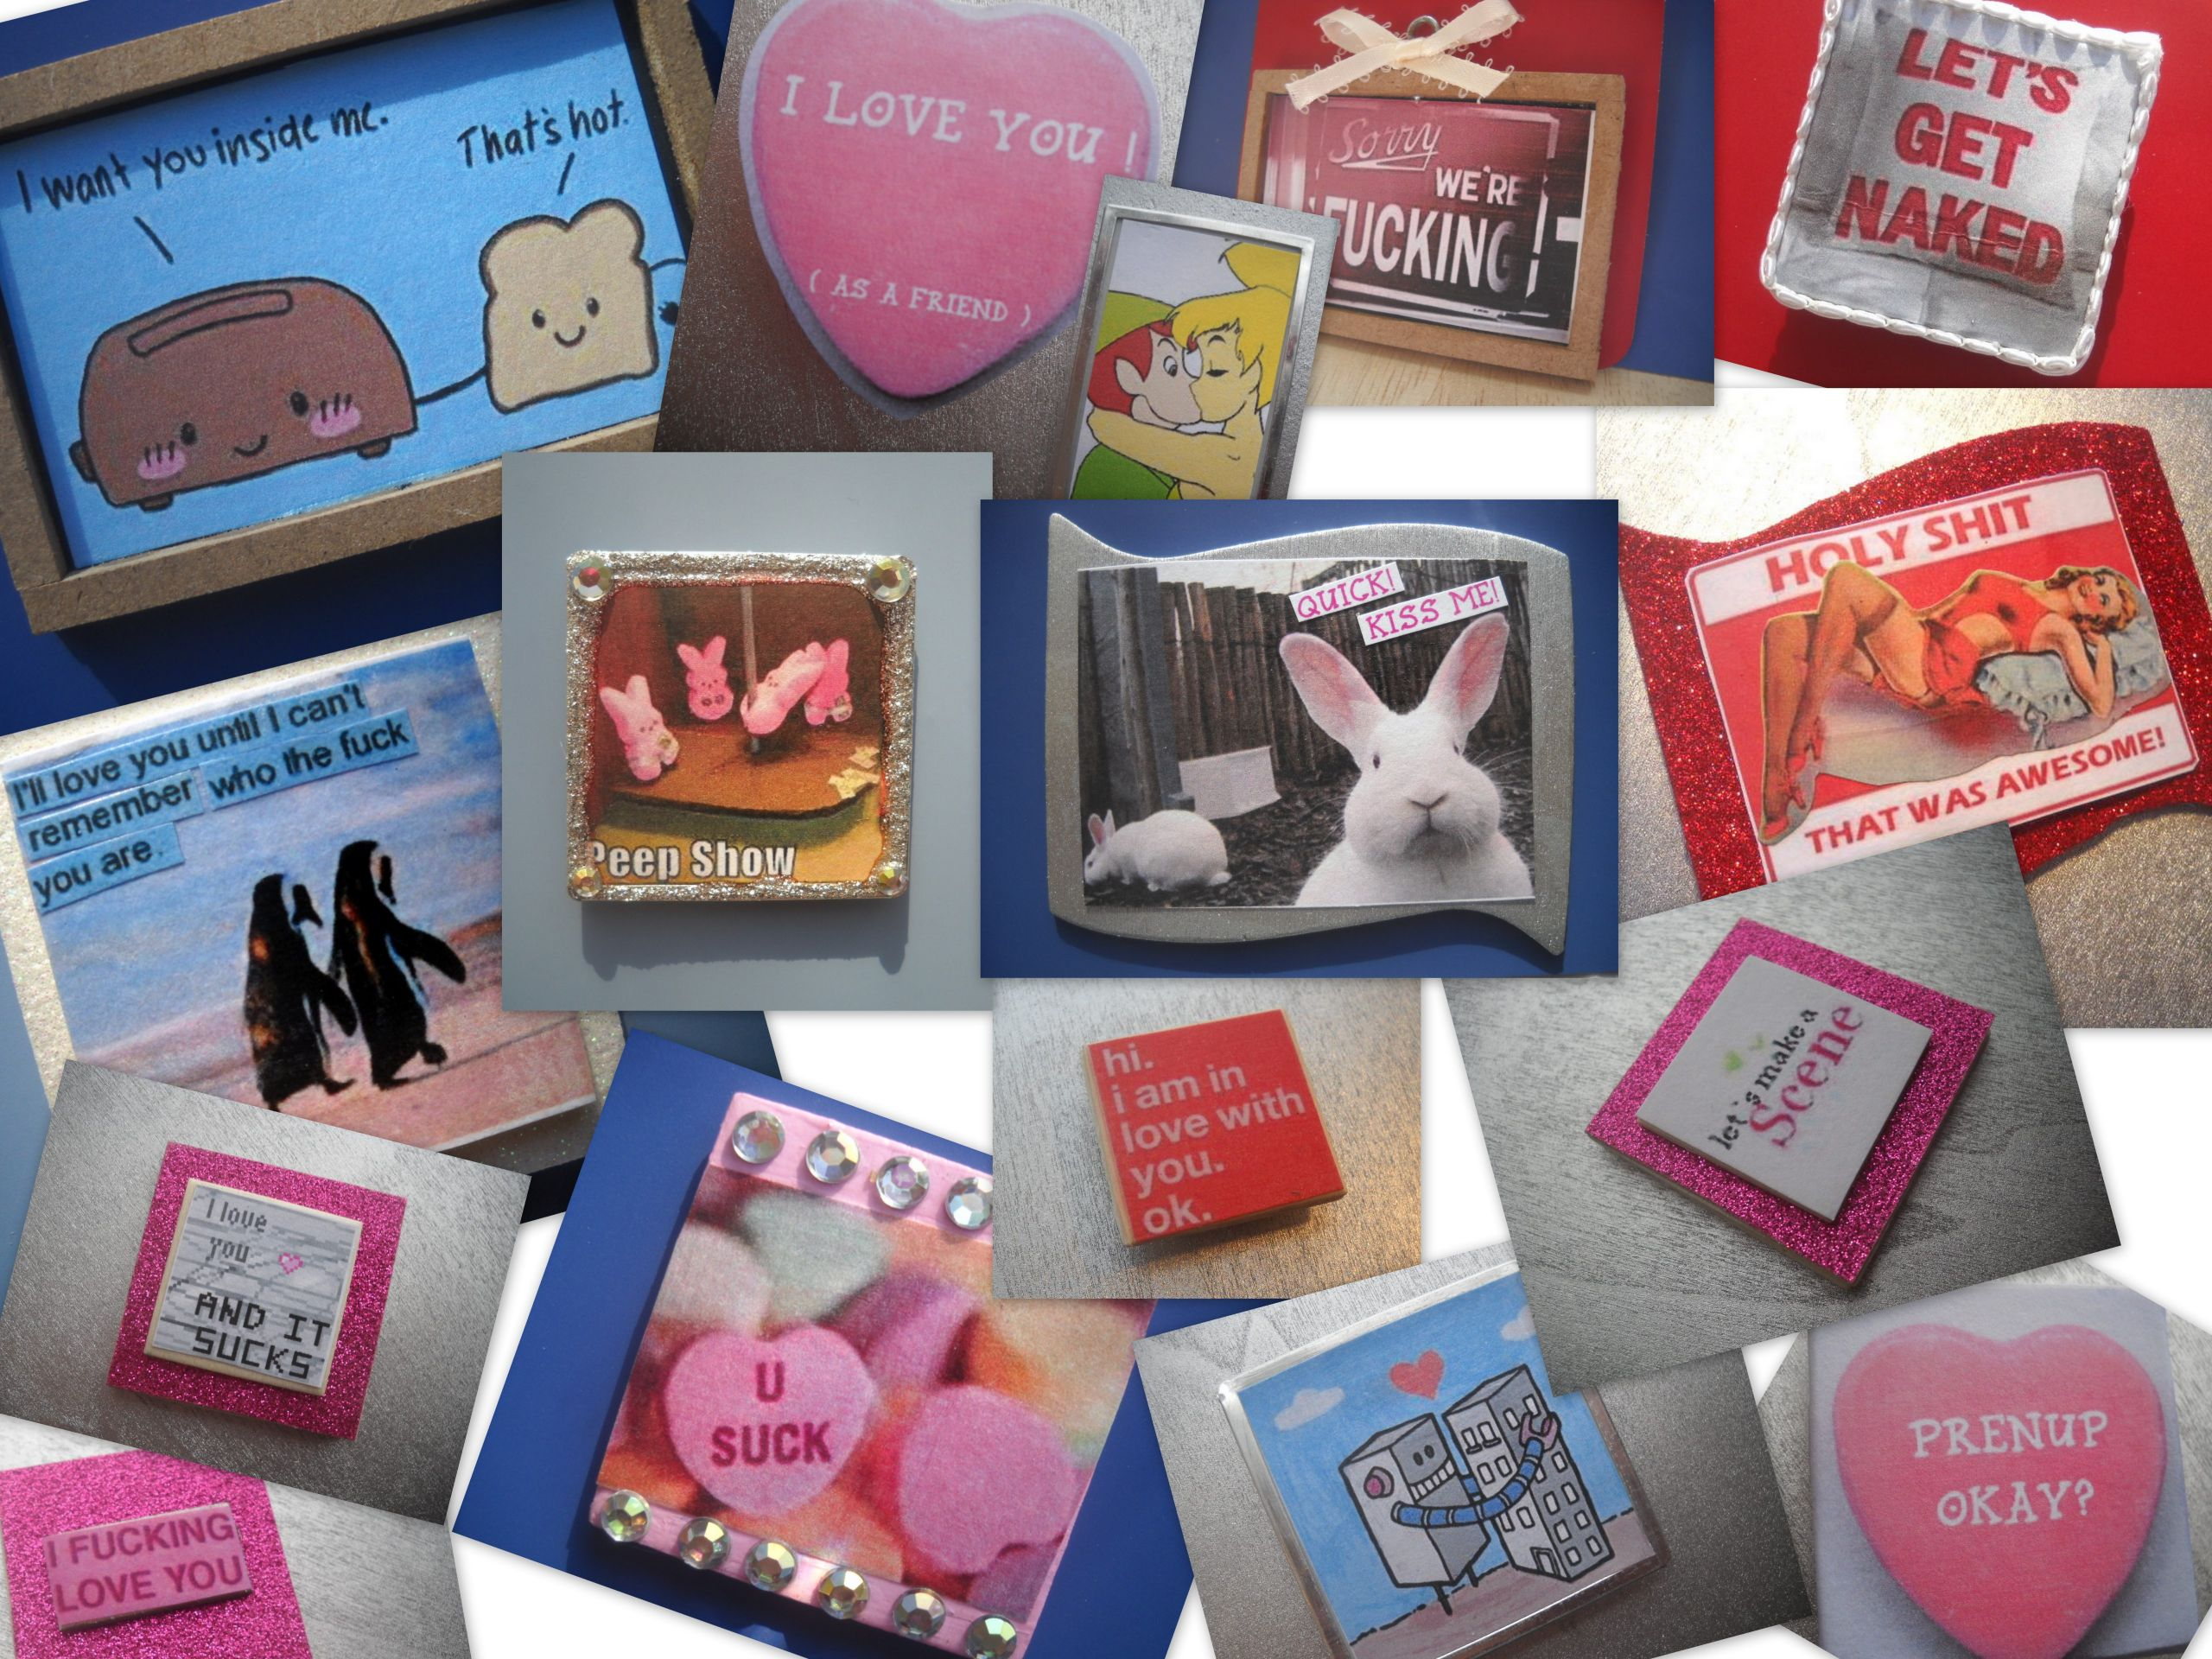 Funny Valentines Day Gifts  New Naughty Funny Valentines Day Gifts Original